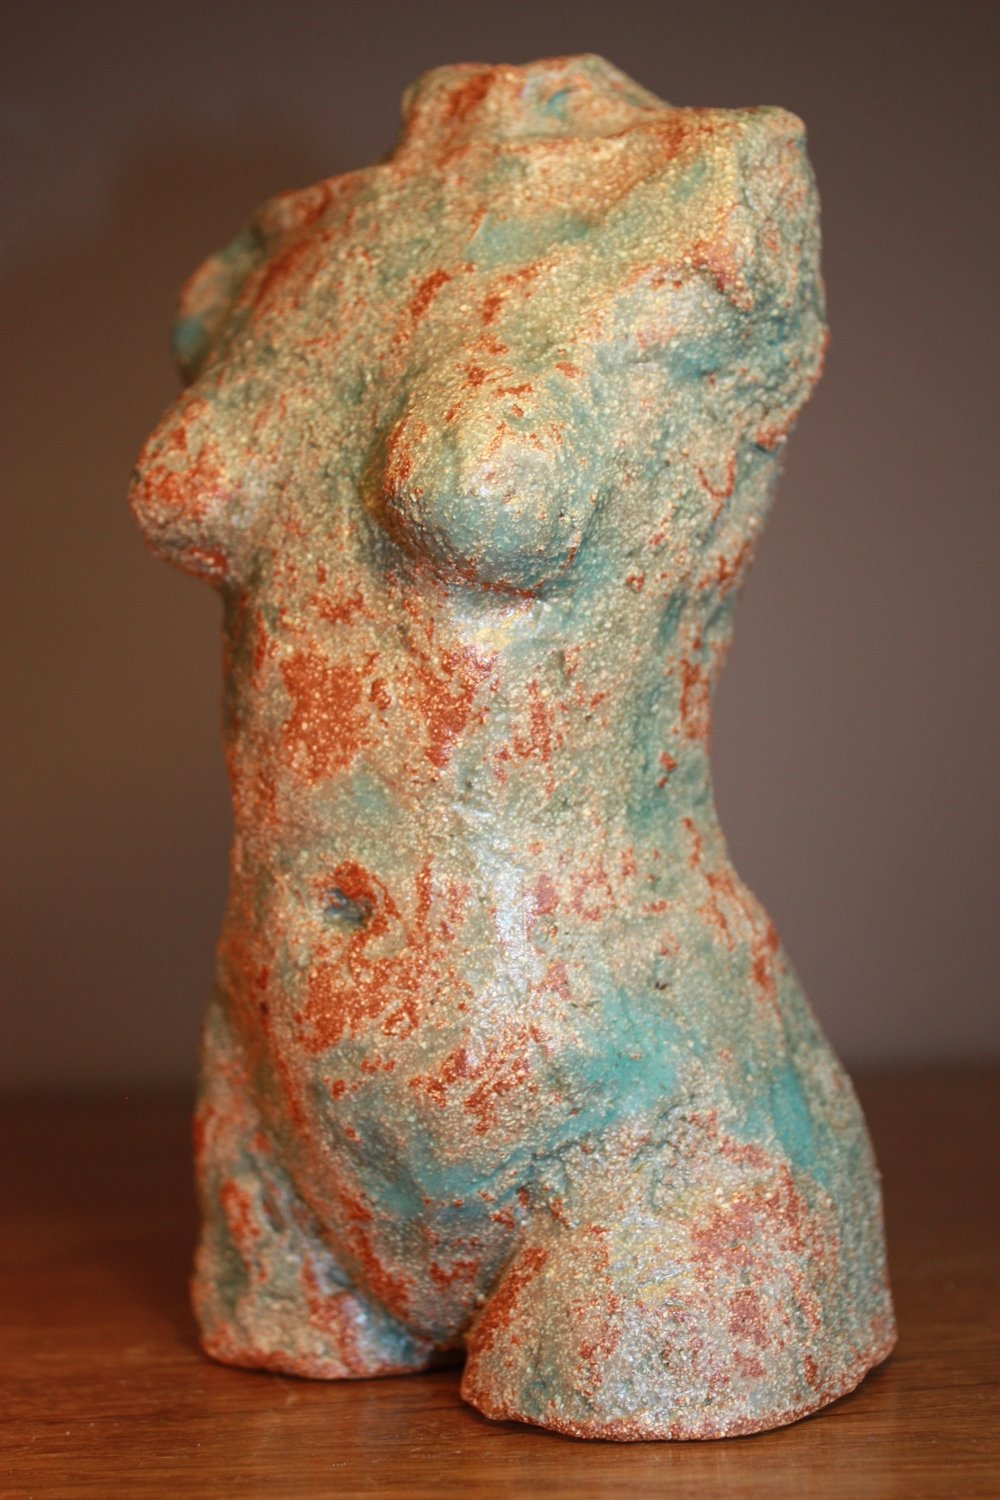 Copy of Ceramic torso fired with vibrant glazes.